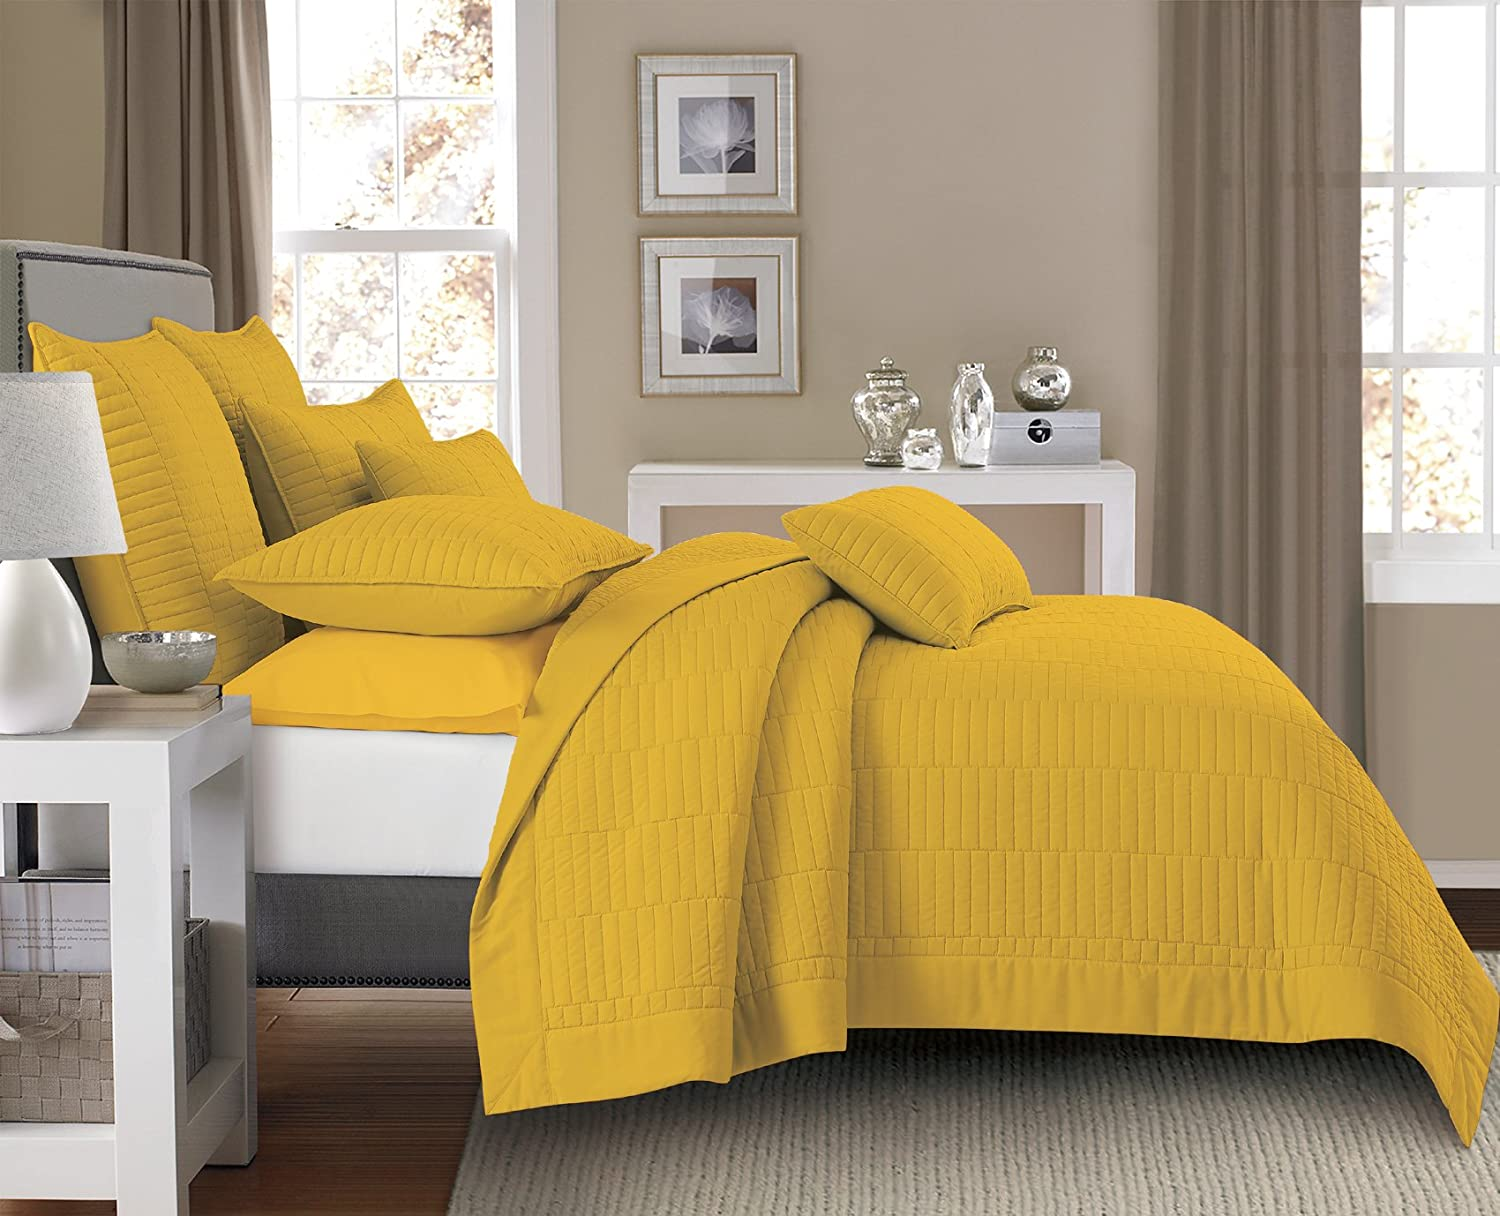 Lilly & Skye Gianna Quilt Set, King, Spicy Mustard